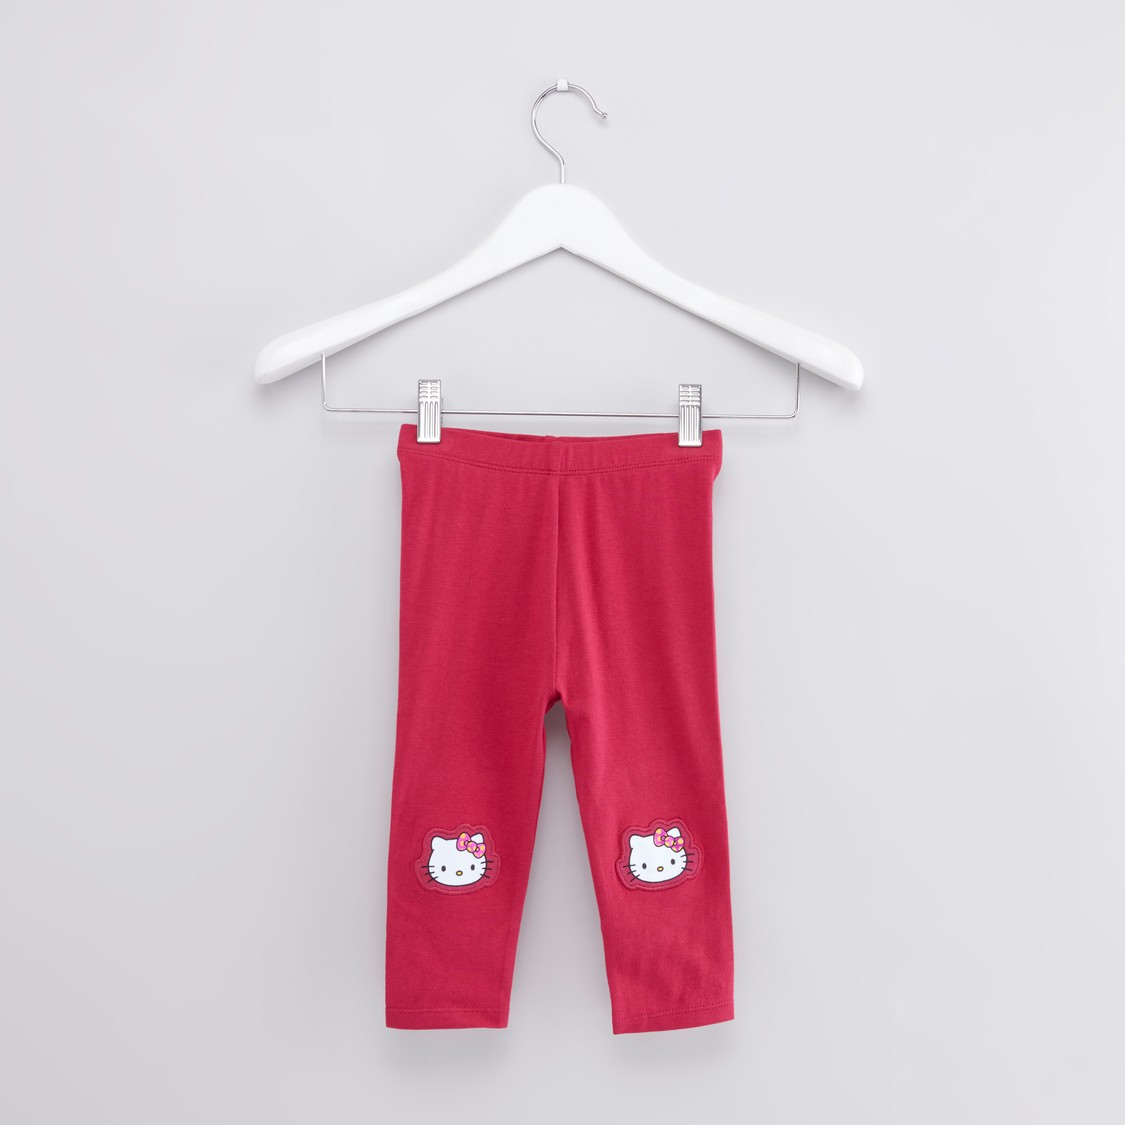 Hello Kitty Printed T-shirt with Applique Detail Leggings